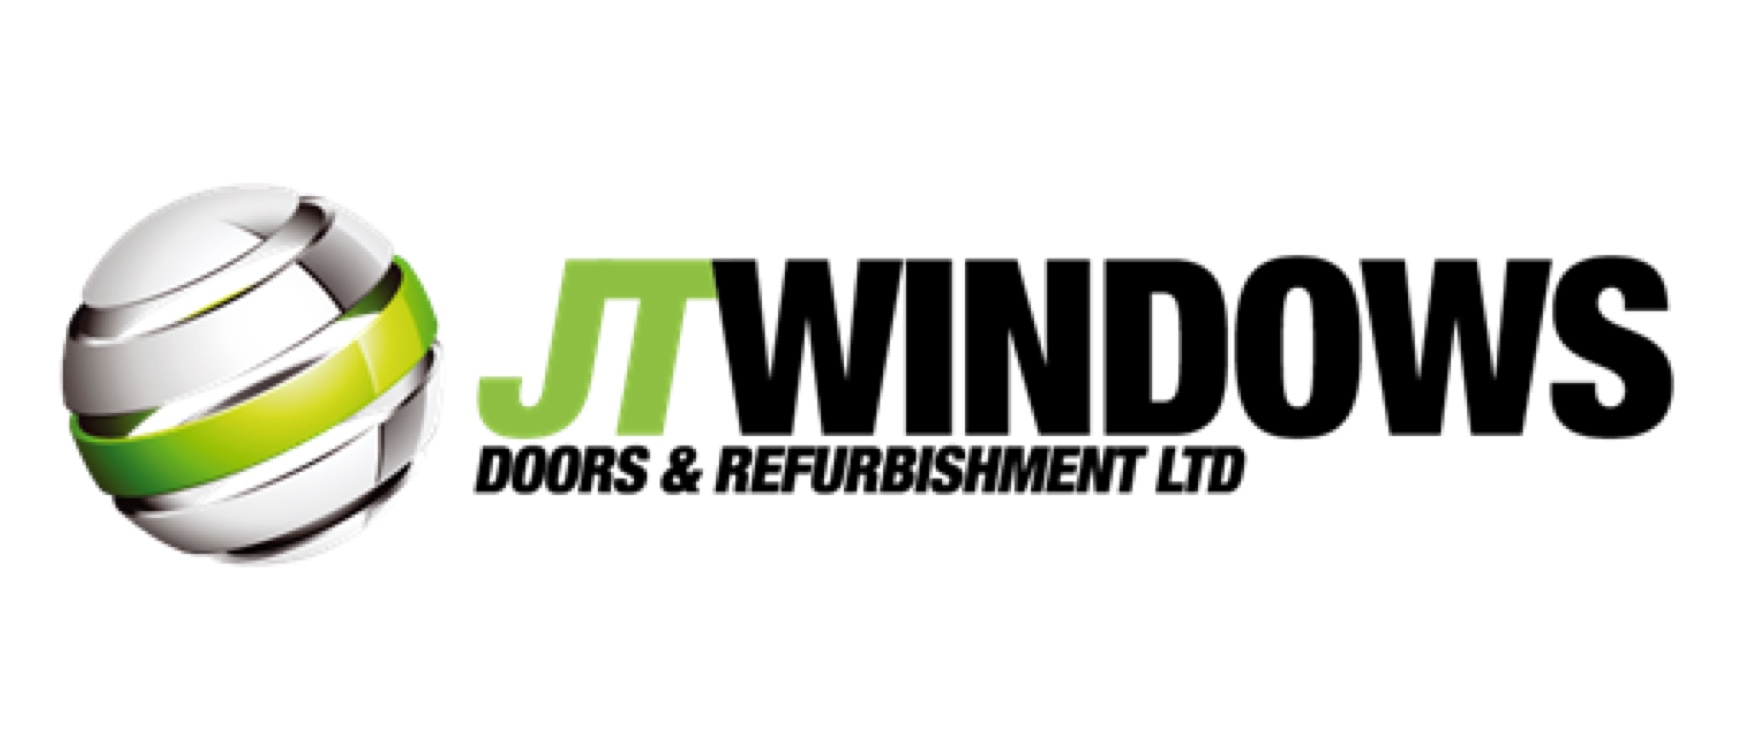 JT Windows, Doors & Refurbishments